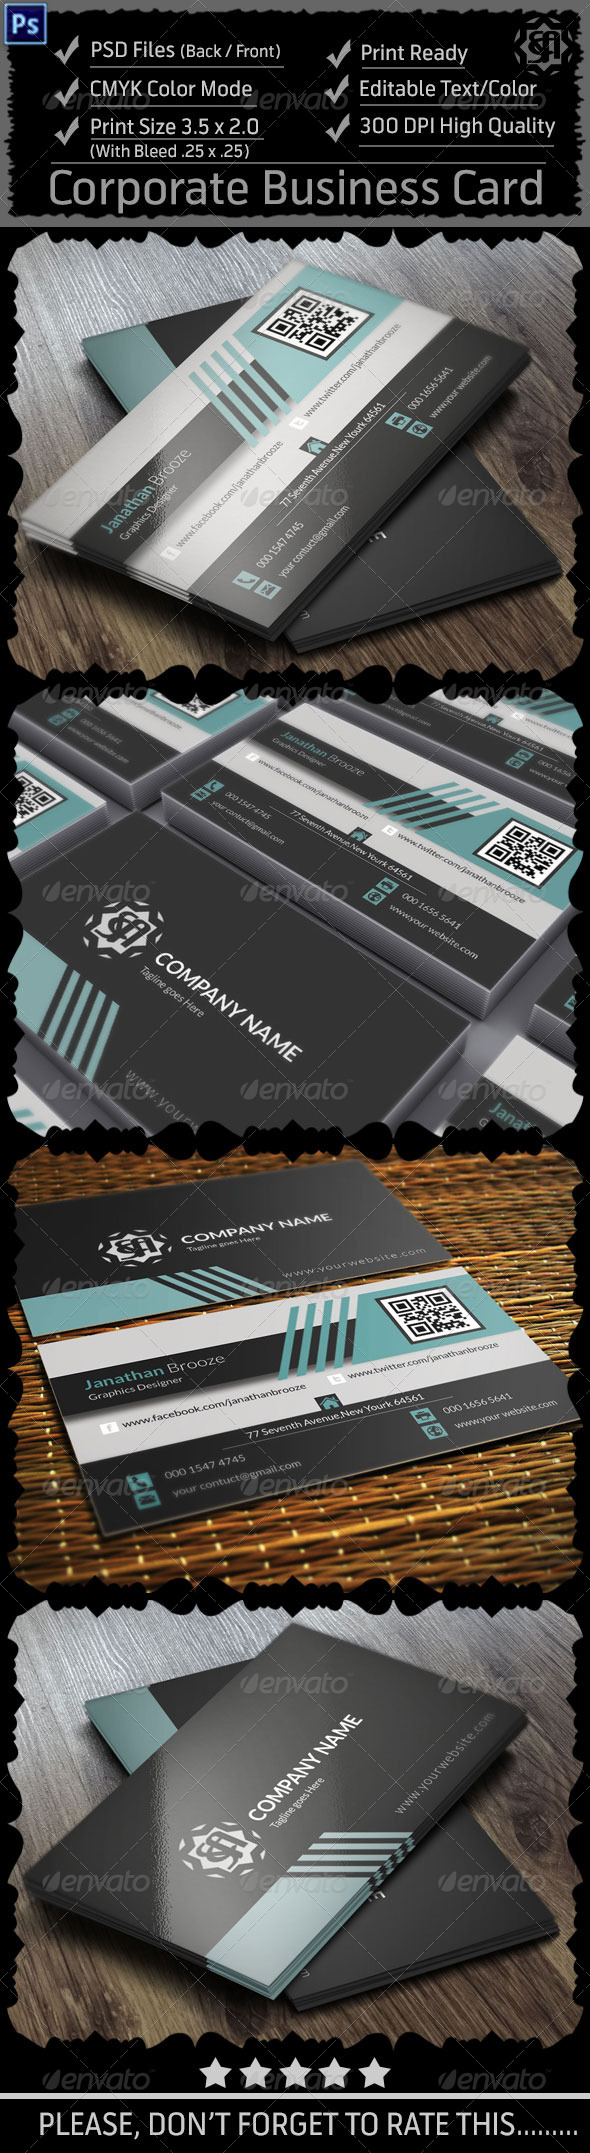 GraphicRiver Corporate Business Card Vol 11 8607132